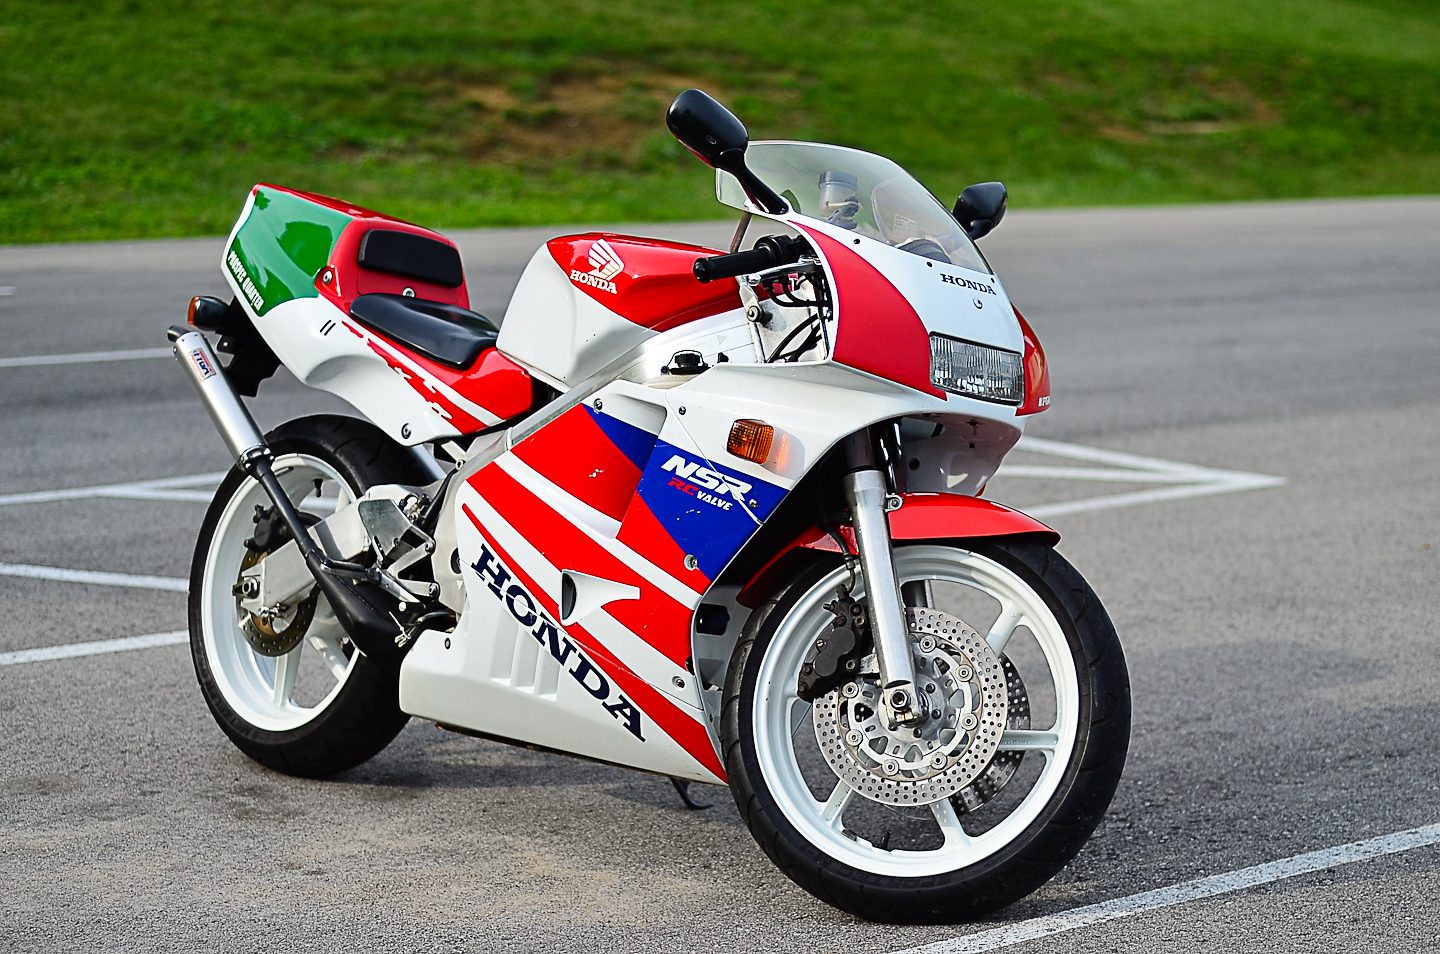 1991 Honda Nsr250r Mc21 For Sale Rare Sportbikes For Sale